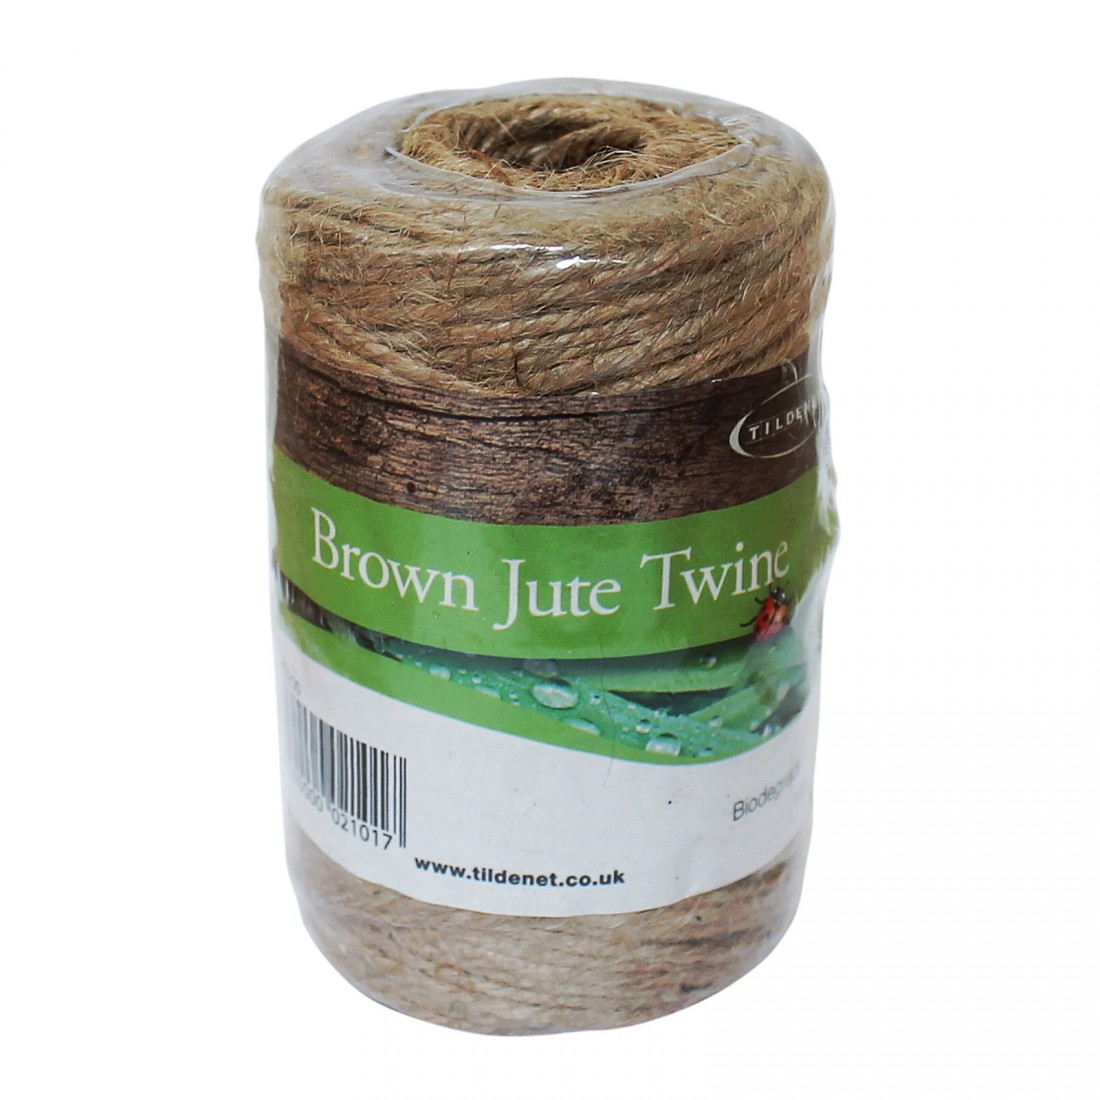 Biodegradable Jute Garden Twine - 100m